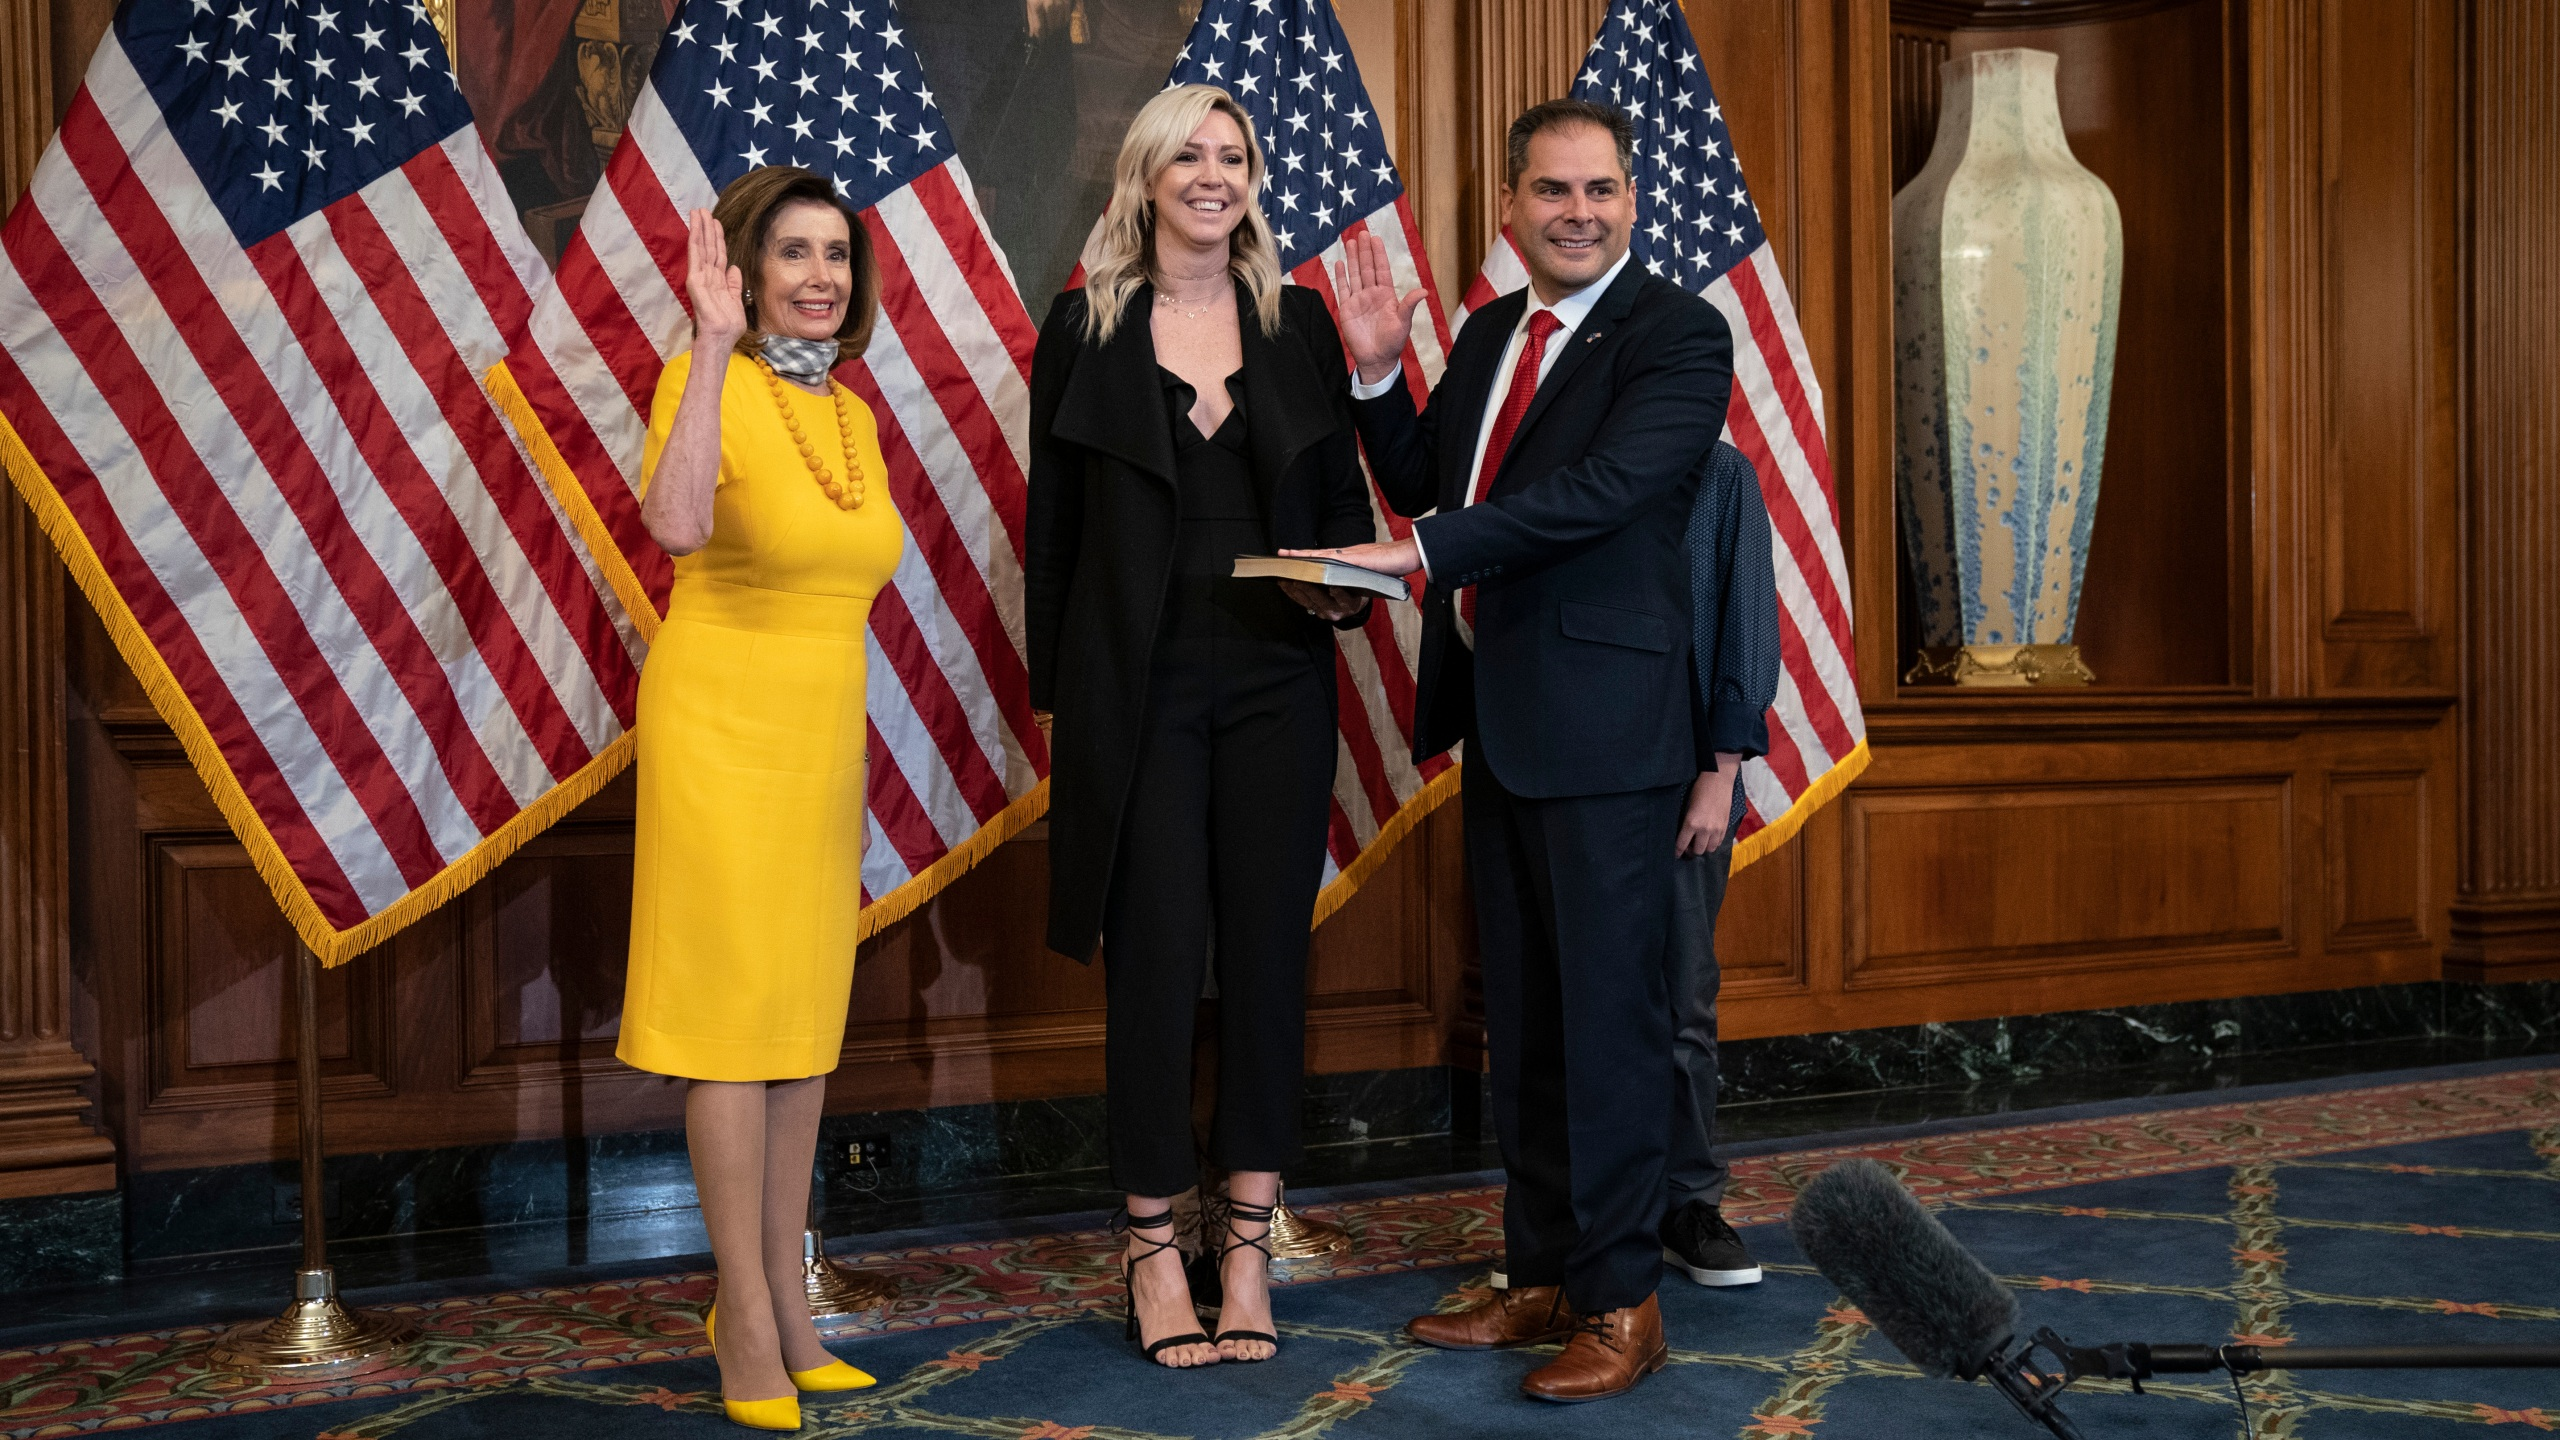 From left: Speaker of the House Nancy Pelosi participates in a ceremonial swearing-in with new Rep. Mike Garcia, with his wife Rebecca, at the U.S. Capitol on May 19, 2020 in Washington, D.C. (Drew Angerer/Getty Images)